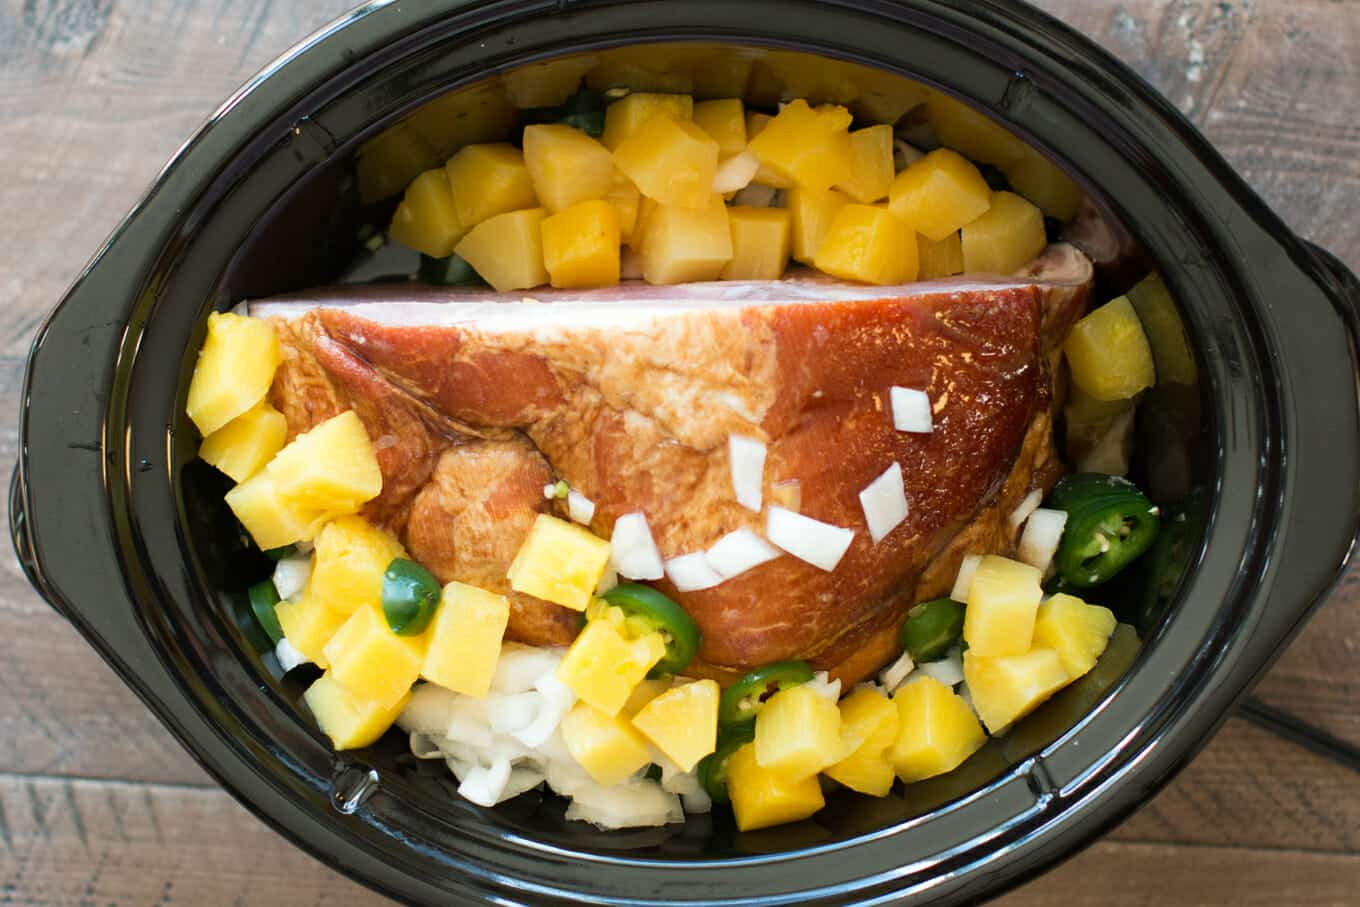 Ham in slow cooker with pineapple, onion and jalapeno on top. Uncooked.